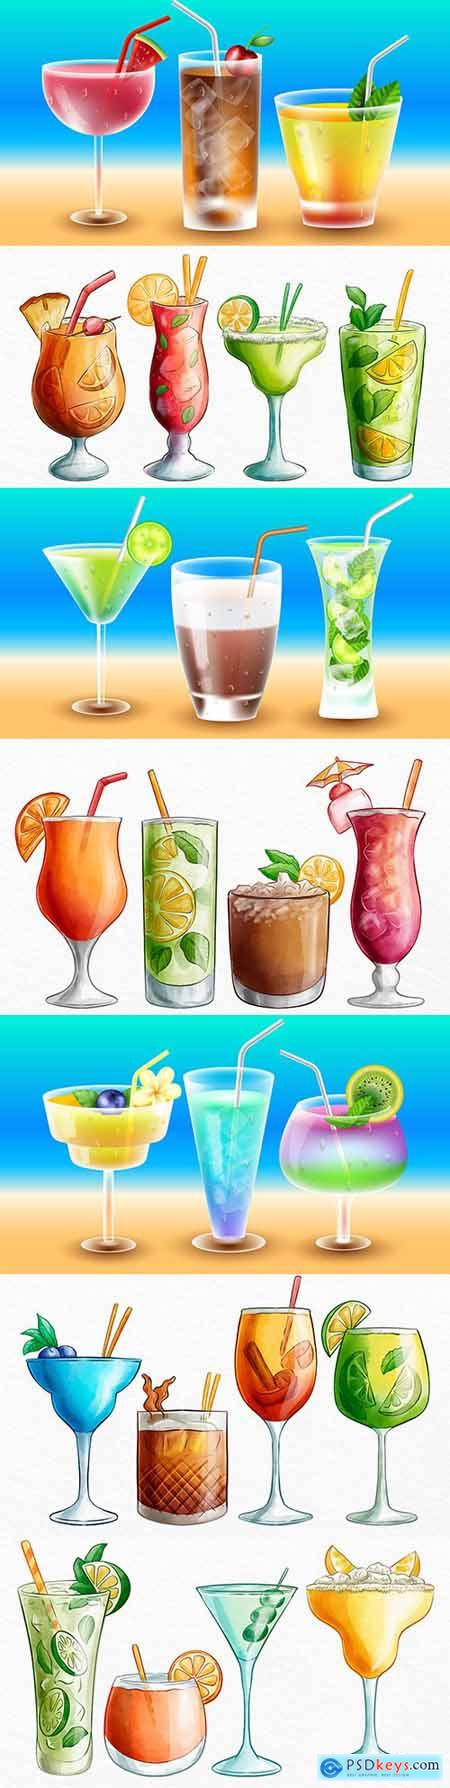 Summer tropical watercolor cocktails drawn illustrations